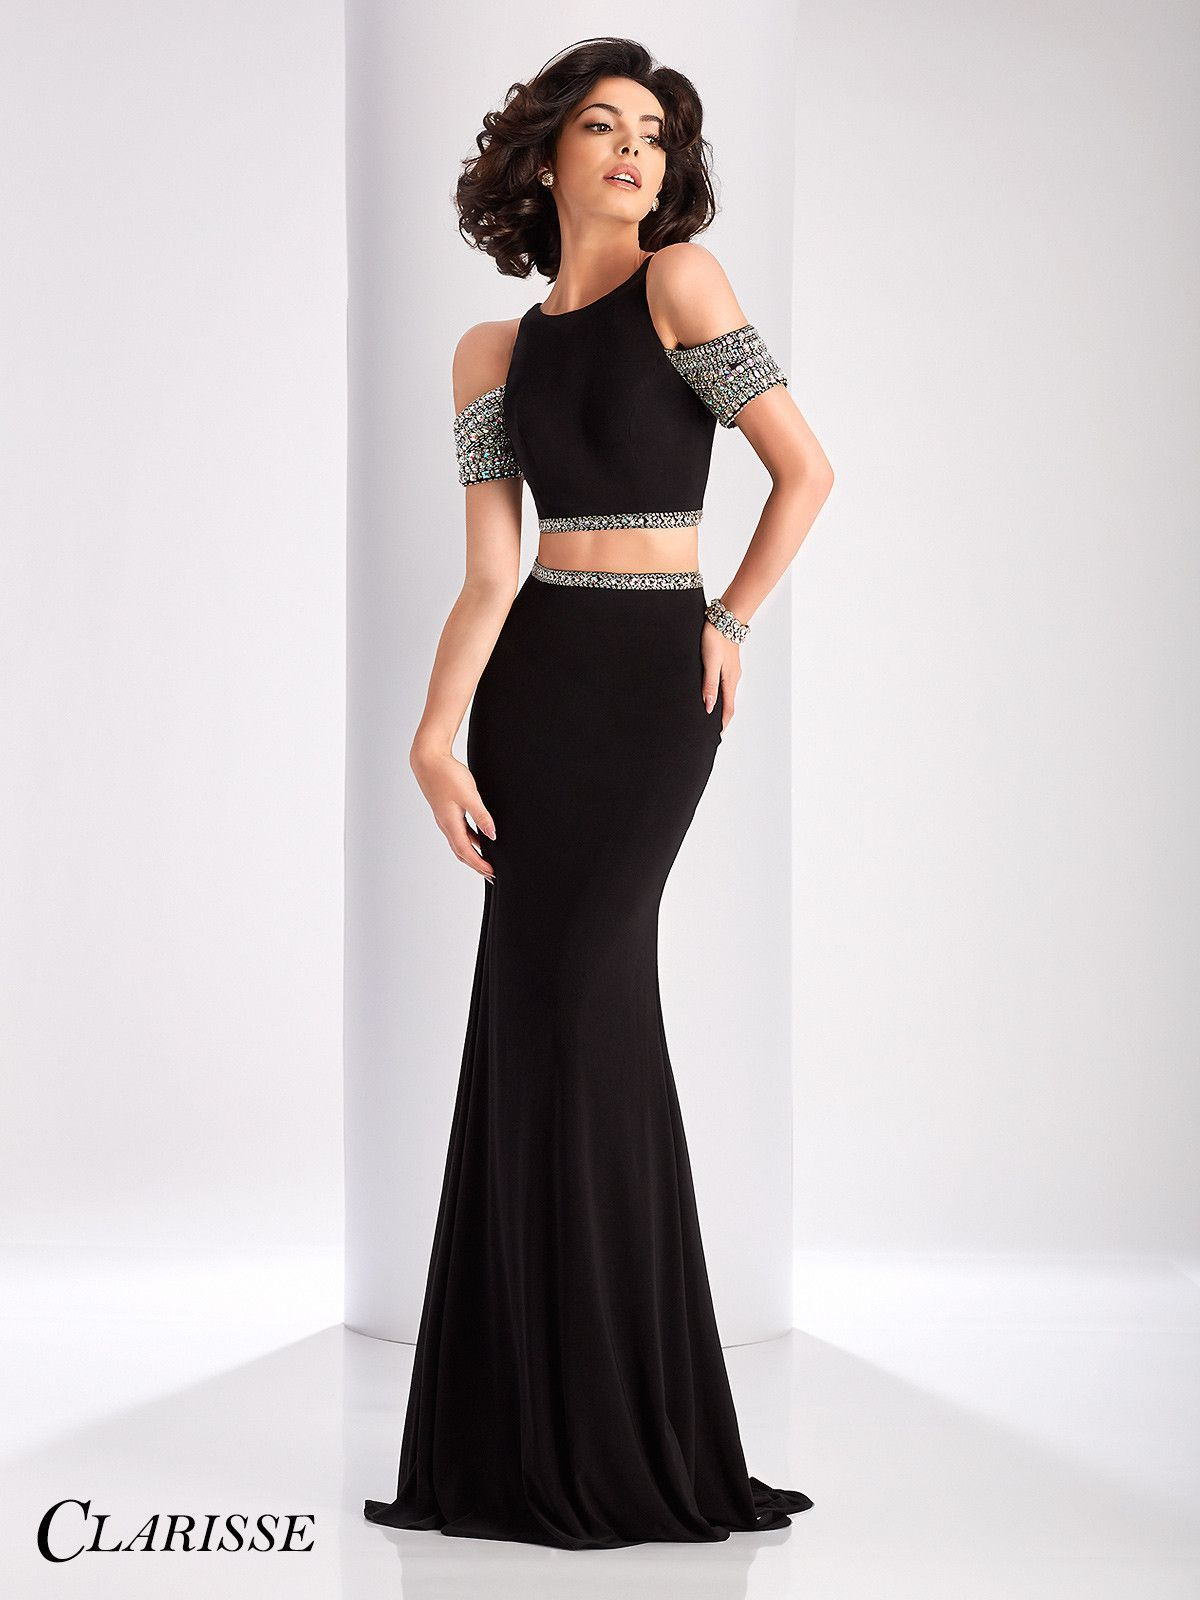 Clarisse prom black twopiece prom dress products pinterest